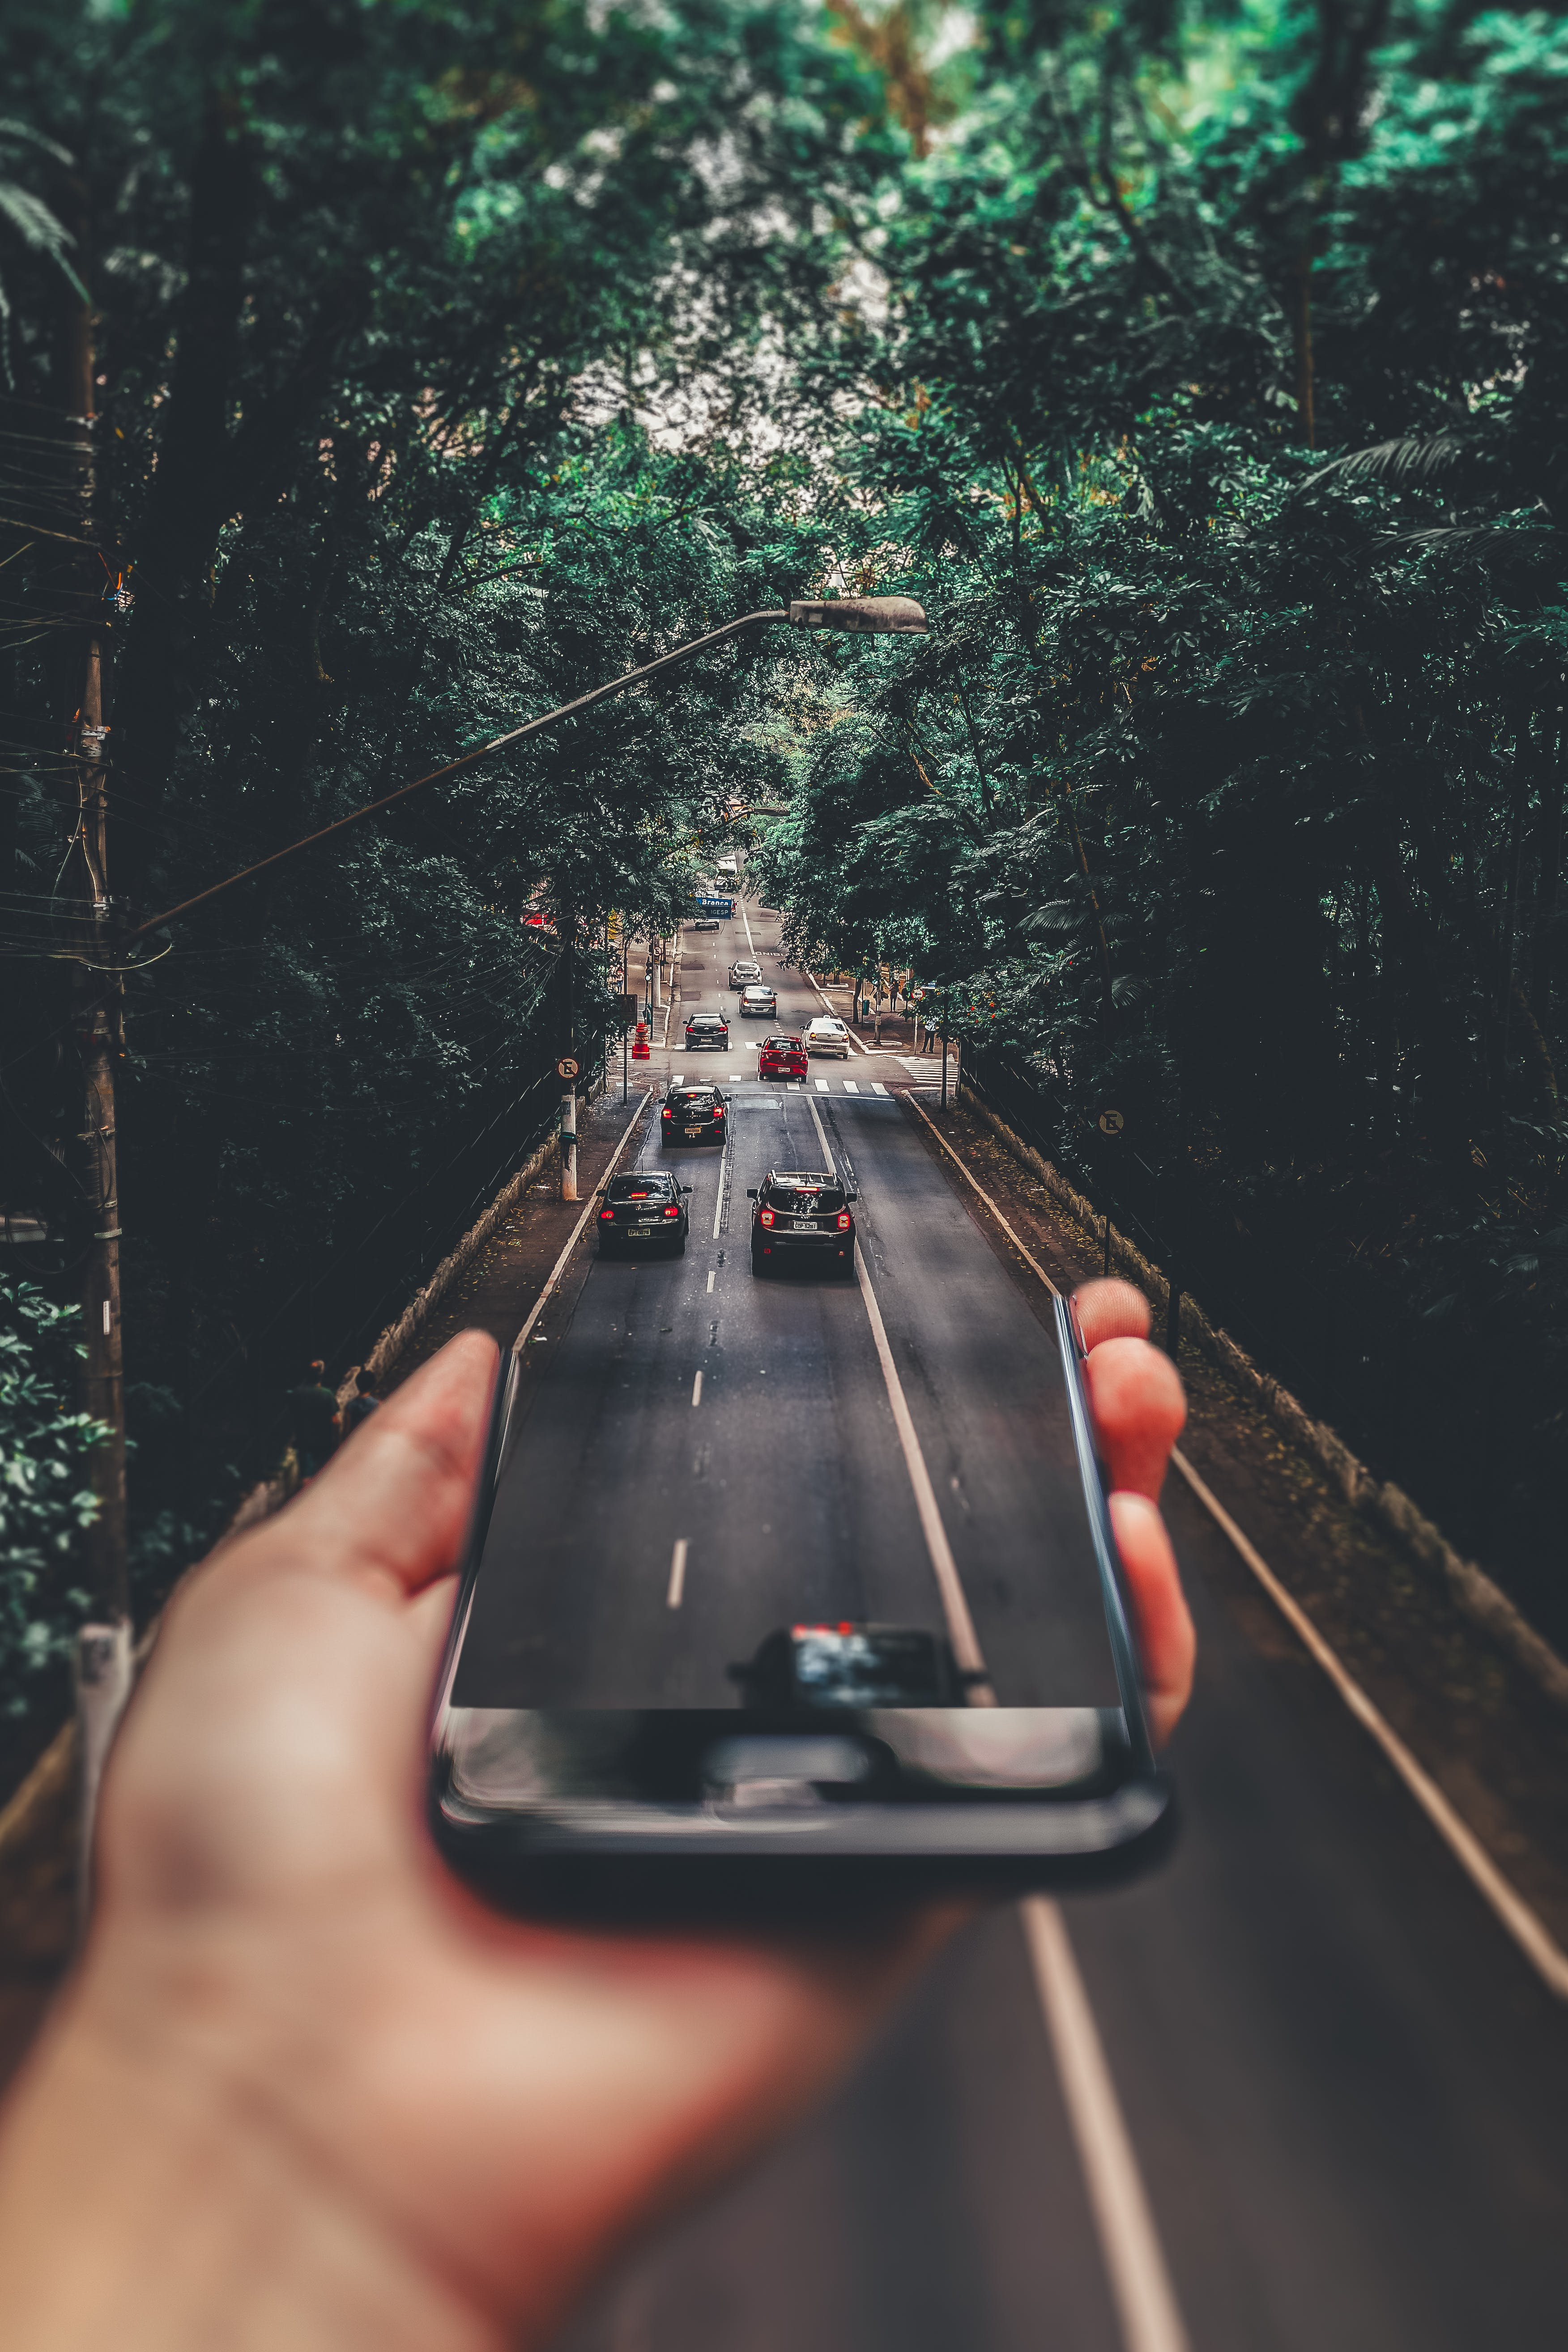 Forced Perspective P Ography Of Cars Running On Road Below Smartphone